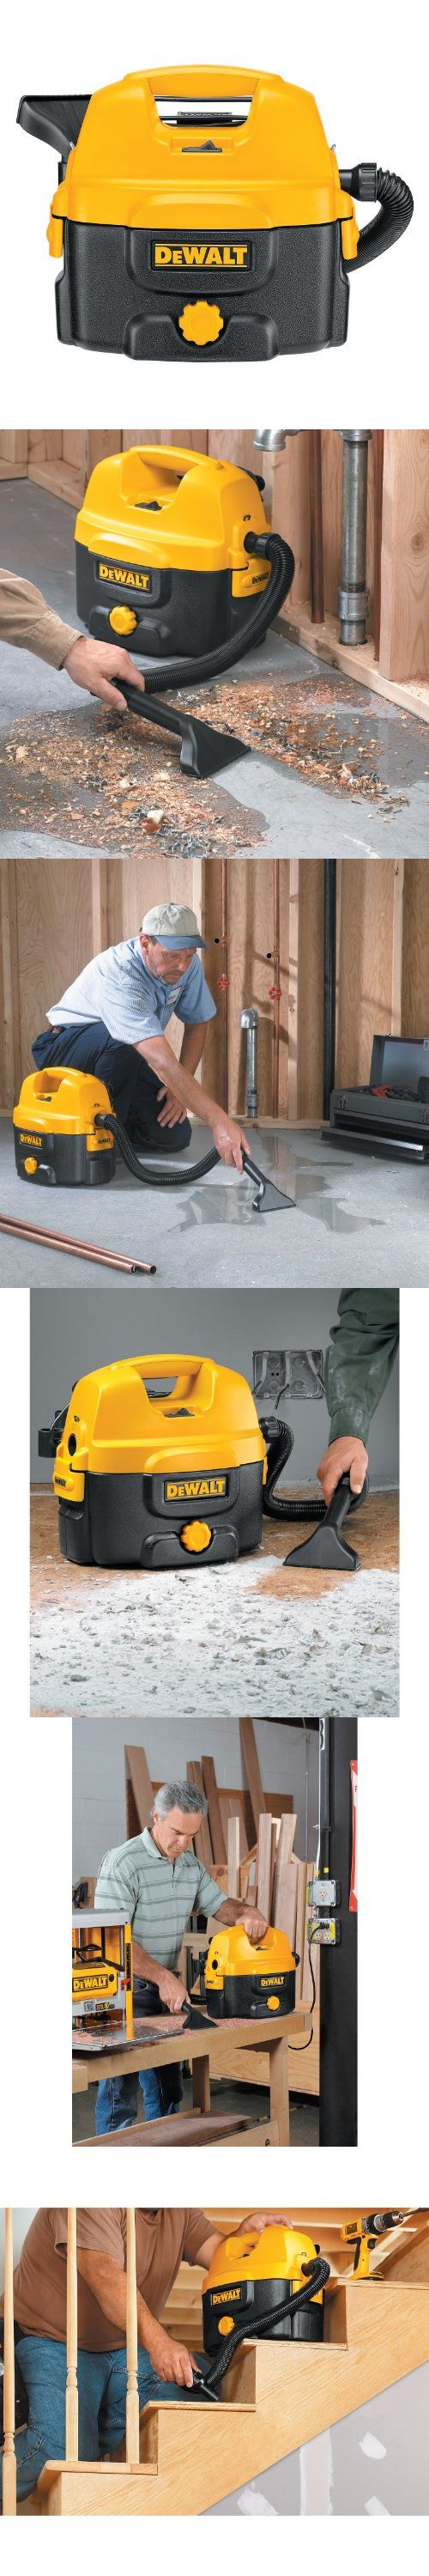 DEWALT DC500 2-Gallon 12-to-18-Volt Cordless/Corded Wet/Dry Vacuum -  Offering convenient corded and cordless cleanup, the two-gallon DEWALT DC500 wet/dry vacuum sucks up big work shop messes and job site debris quickly and efficiently. A high-efficiency wet/dry filter... - Power Tools - Tools & Hardware - $99.00